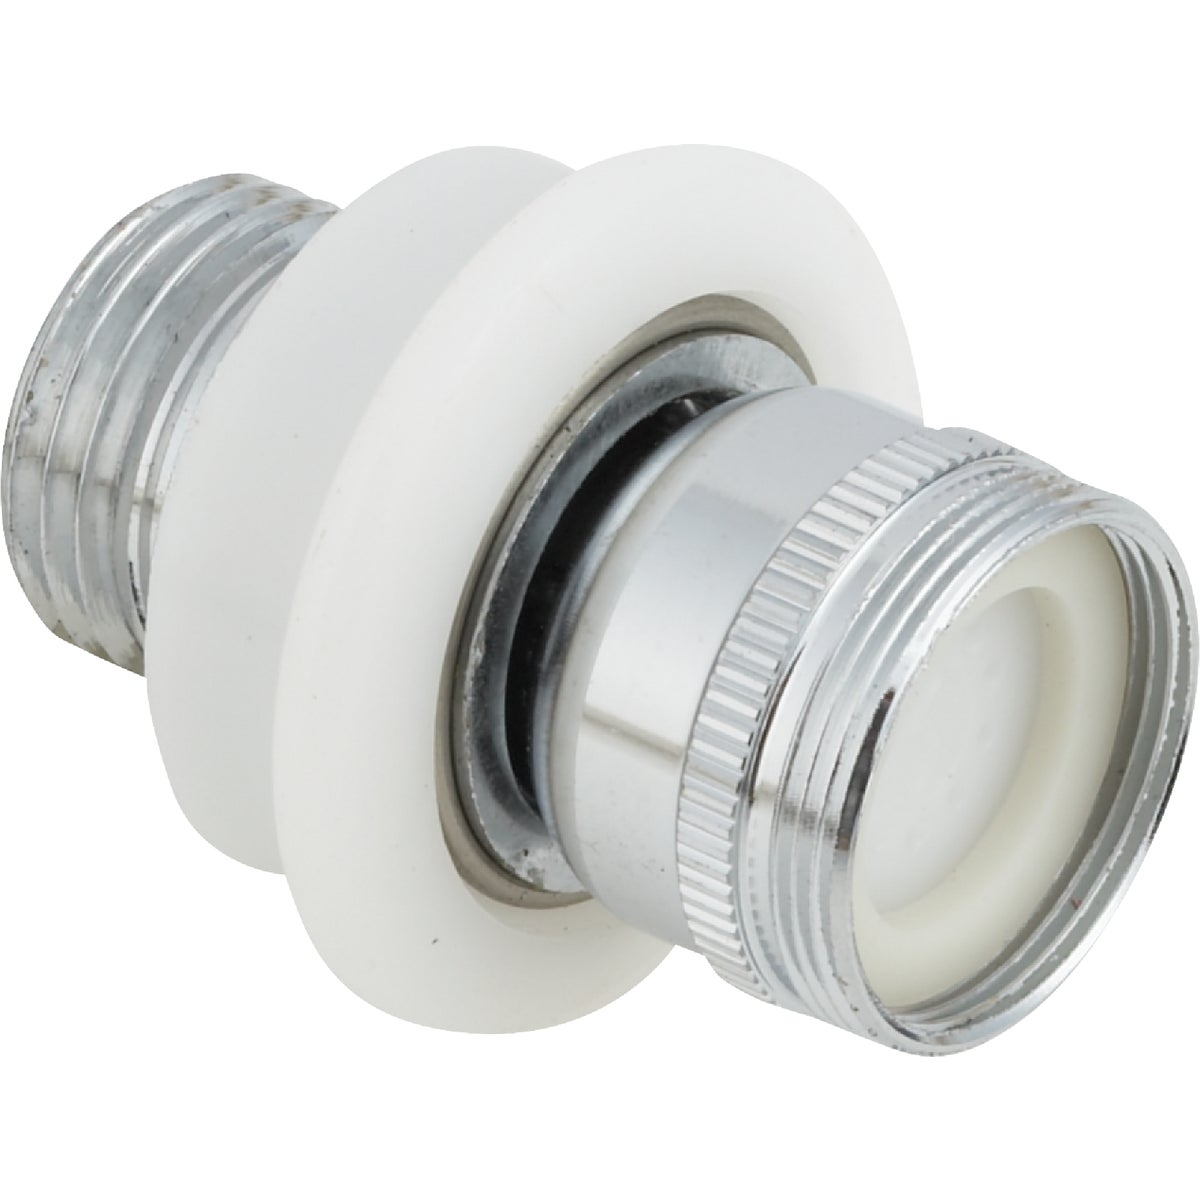 "1/2"" HOSE CONNECTOR - W-1135LF by Do it Best"